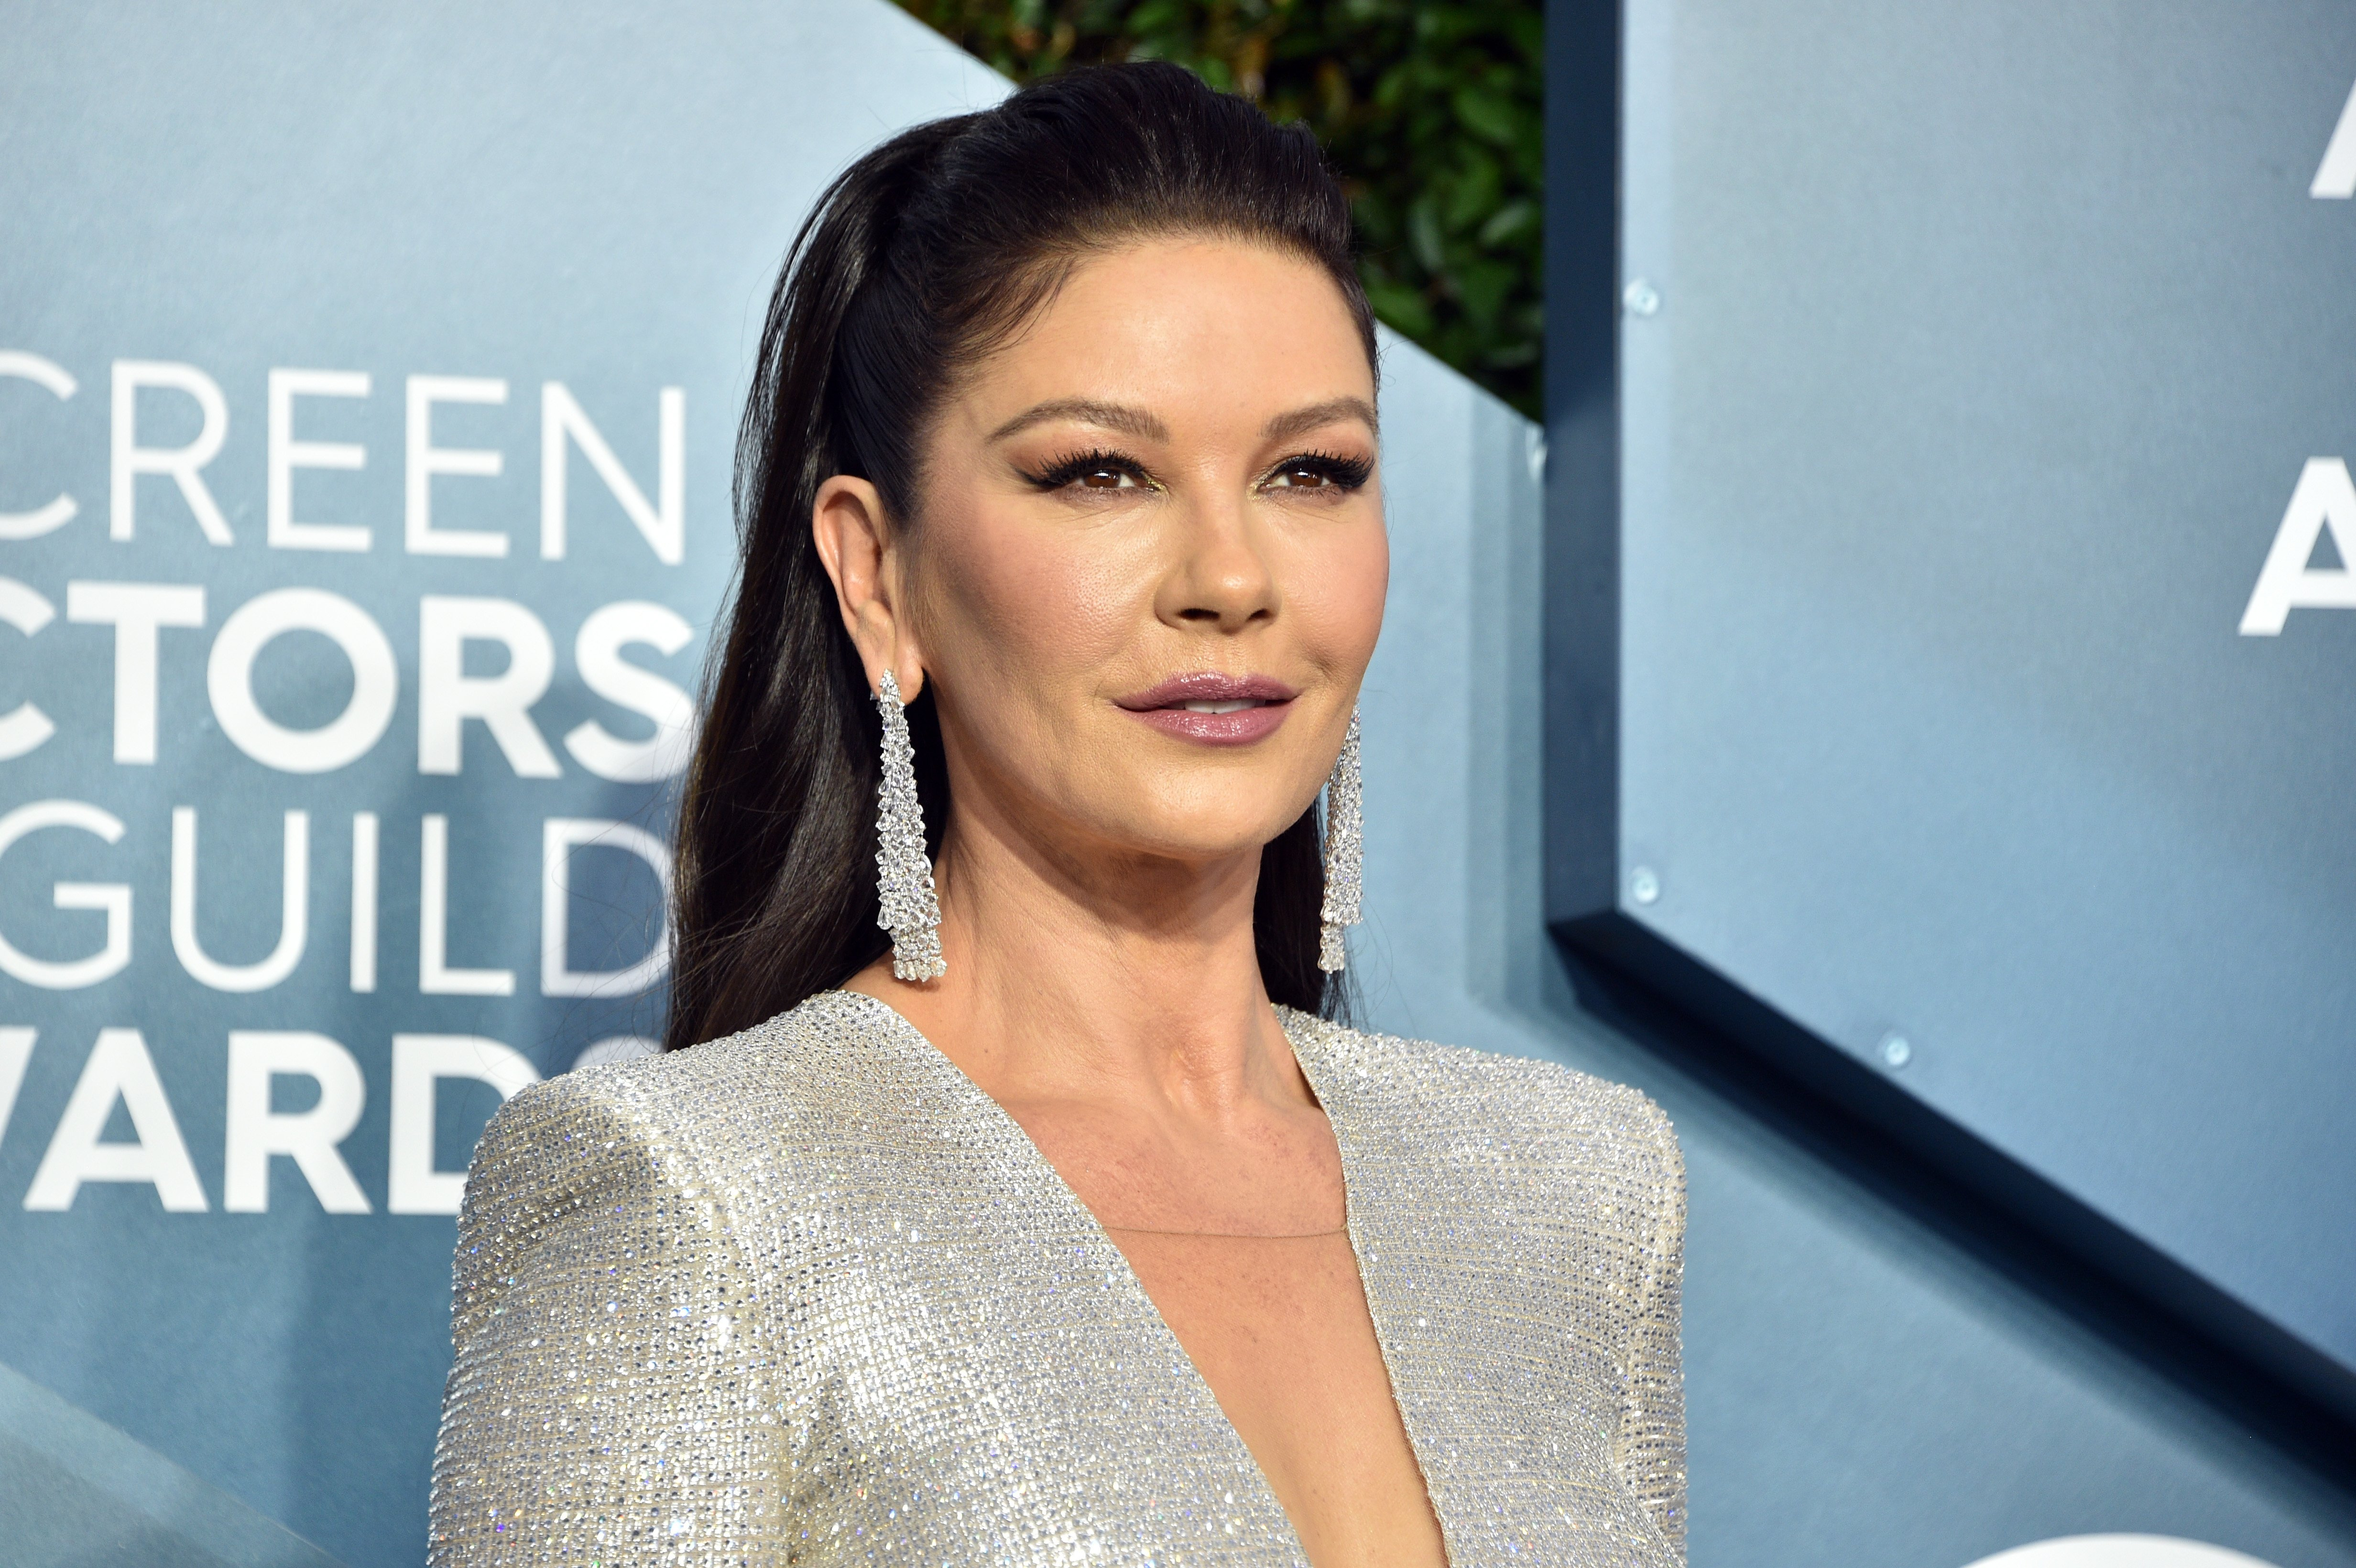 Catherine Zeta-Jones attends the 26th Annual Screen ActorsGuild Awards at The Shrine Auditorium on January 19, 2020 in Los Angeles, California   Photo: Getty Images